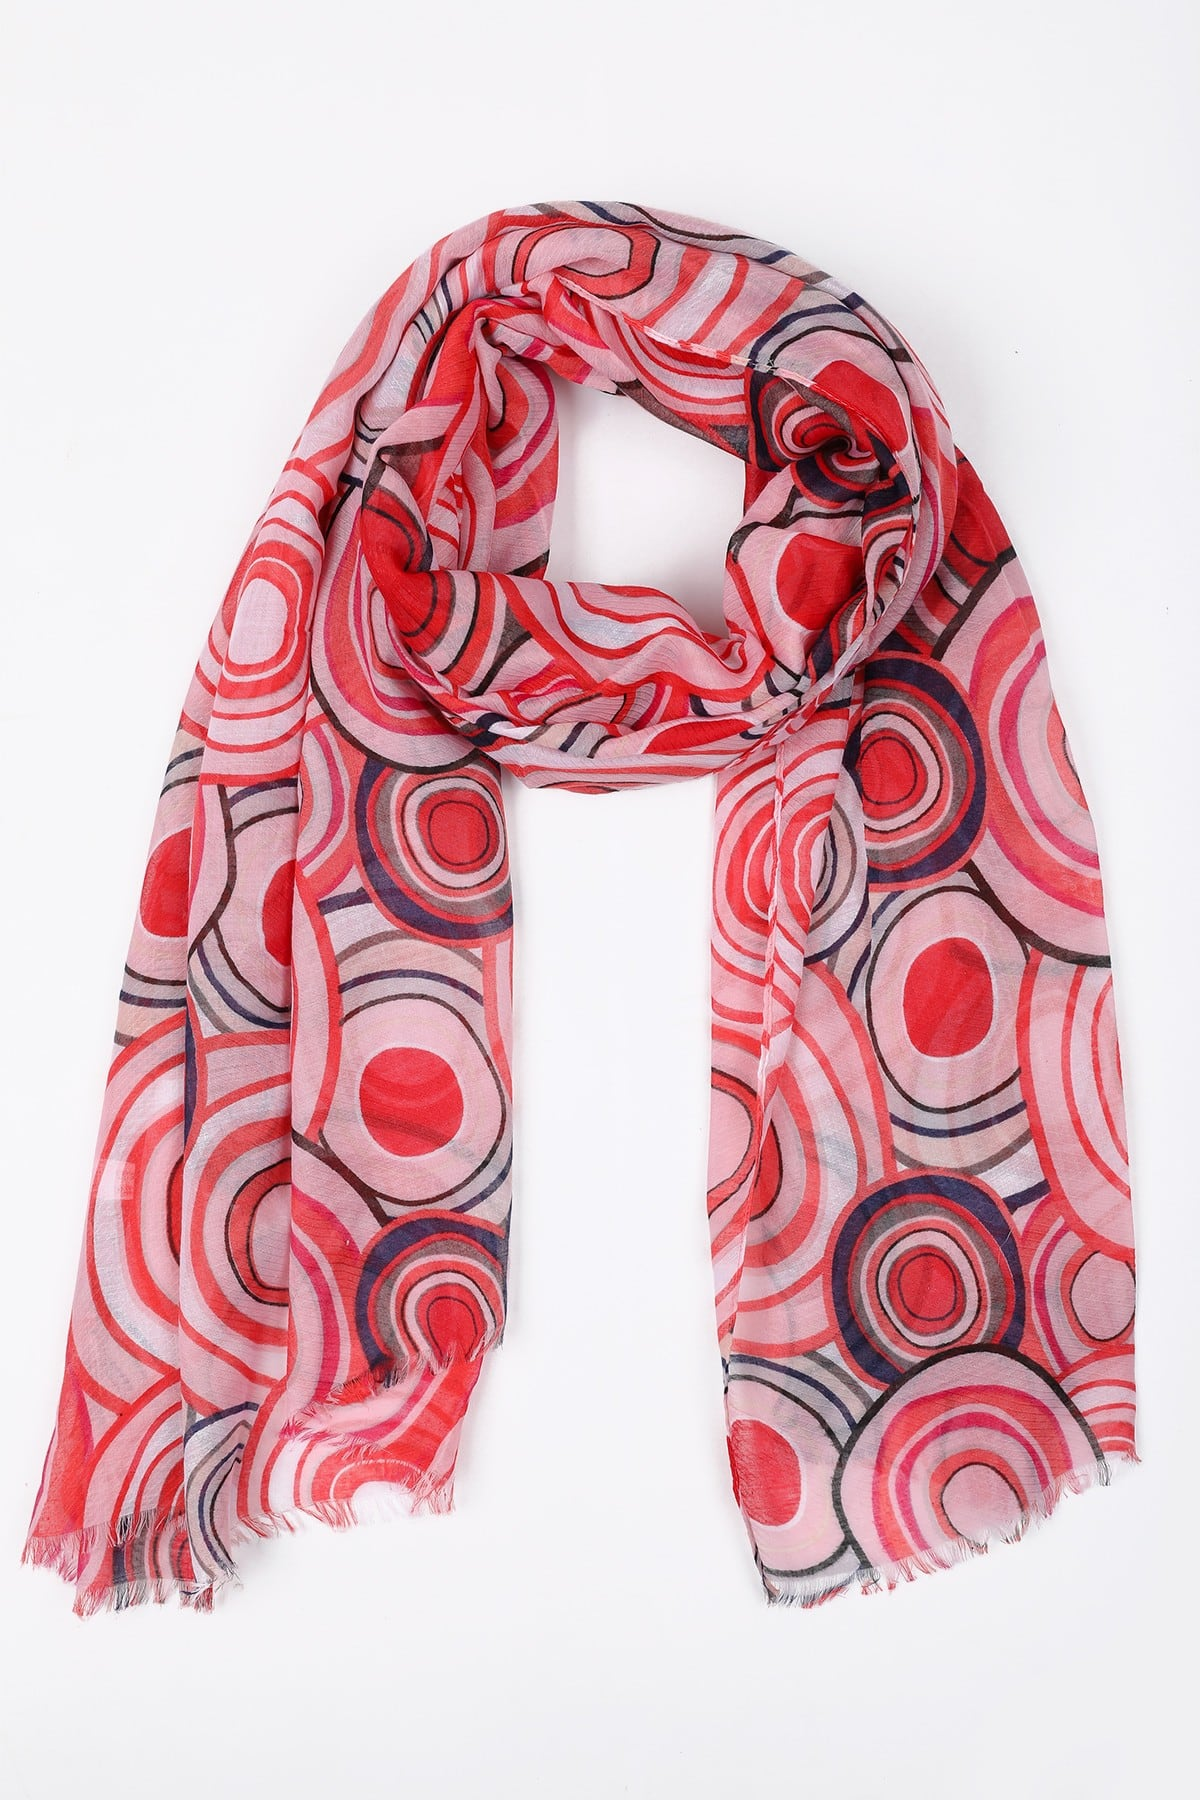 Scarf with pop print of circles